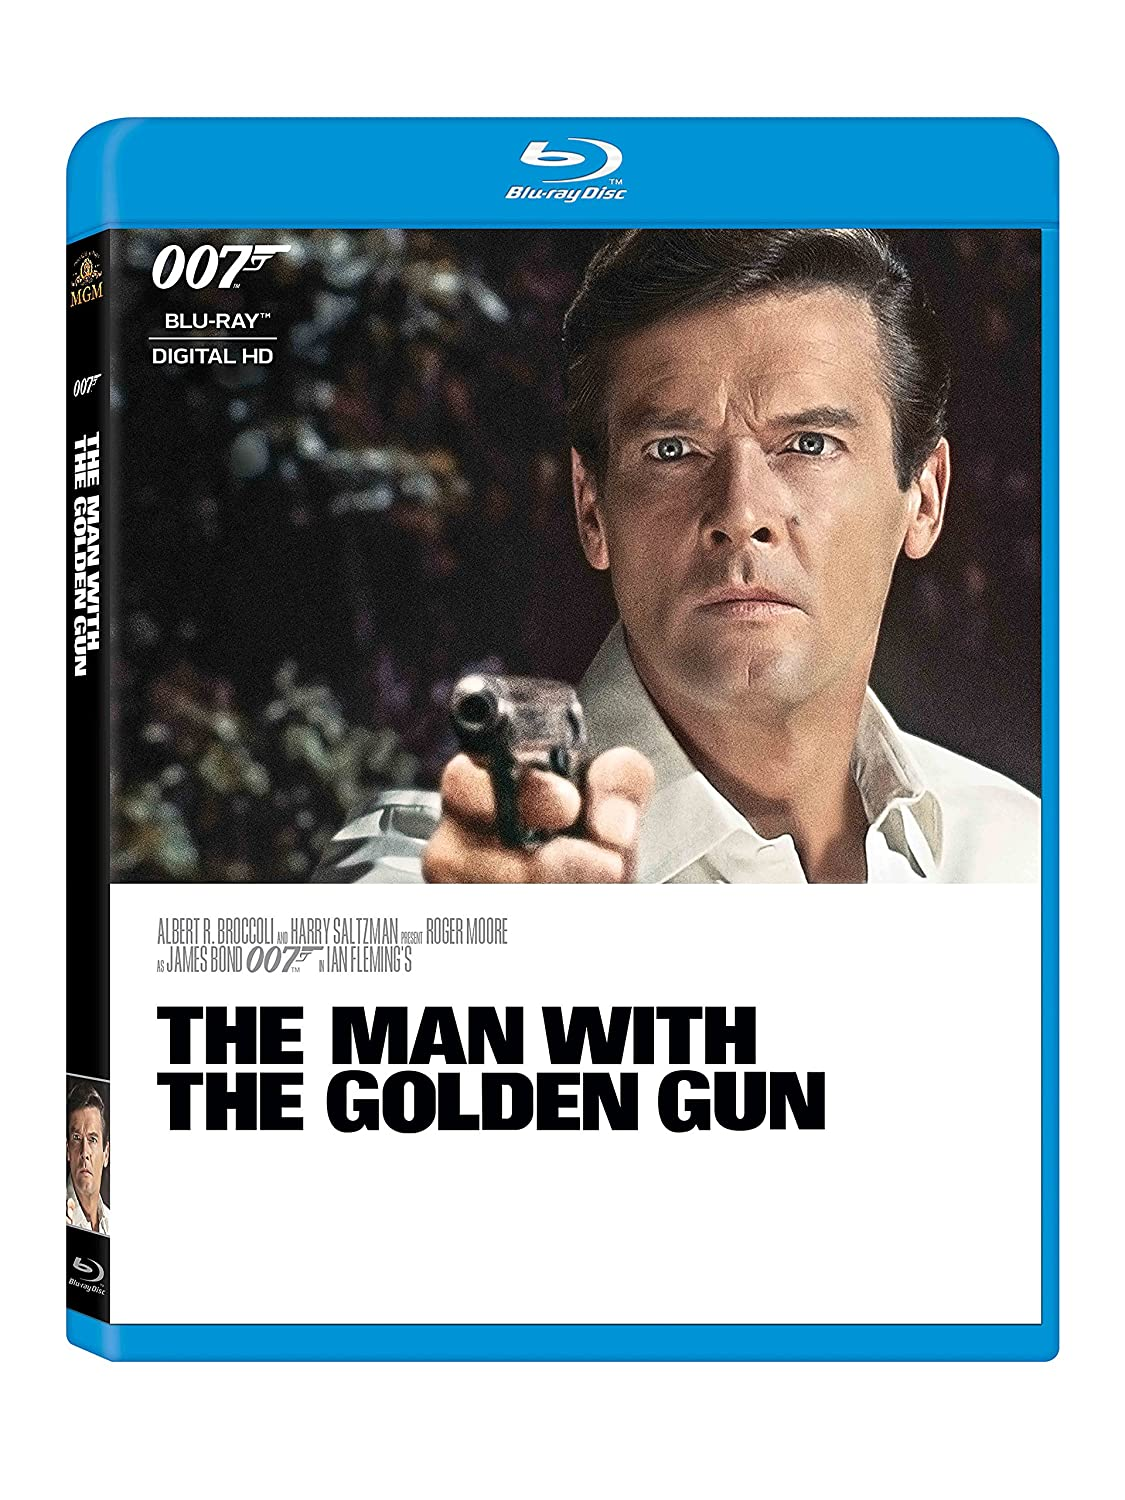 Man with the Golden BD The Max 77% OFF Gun Blu-ray 5% OFF